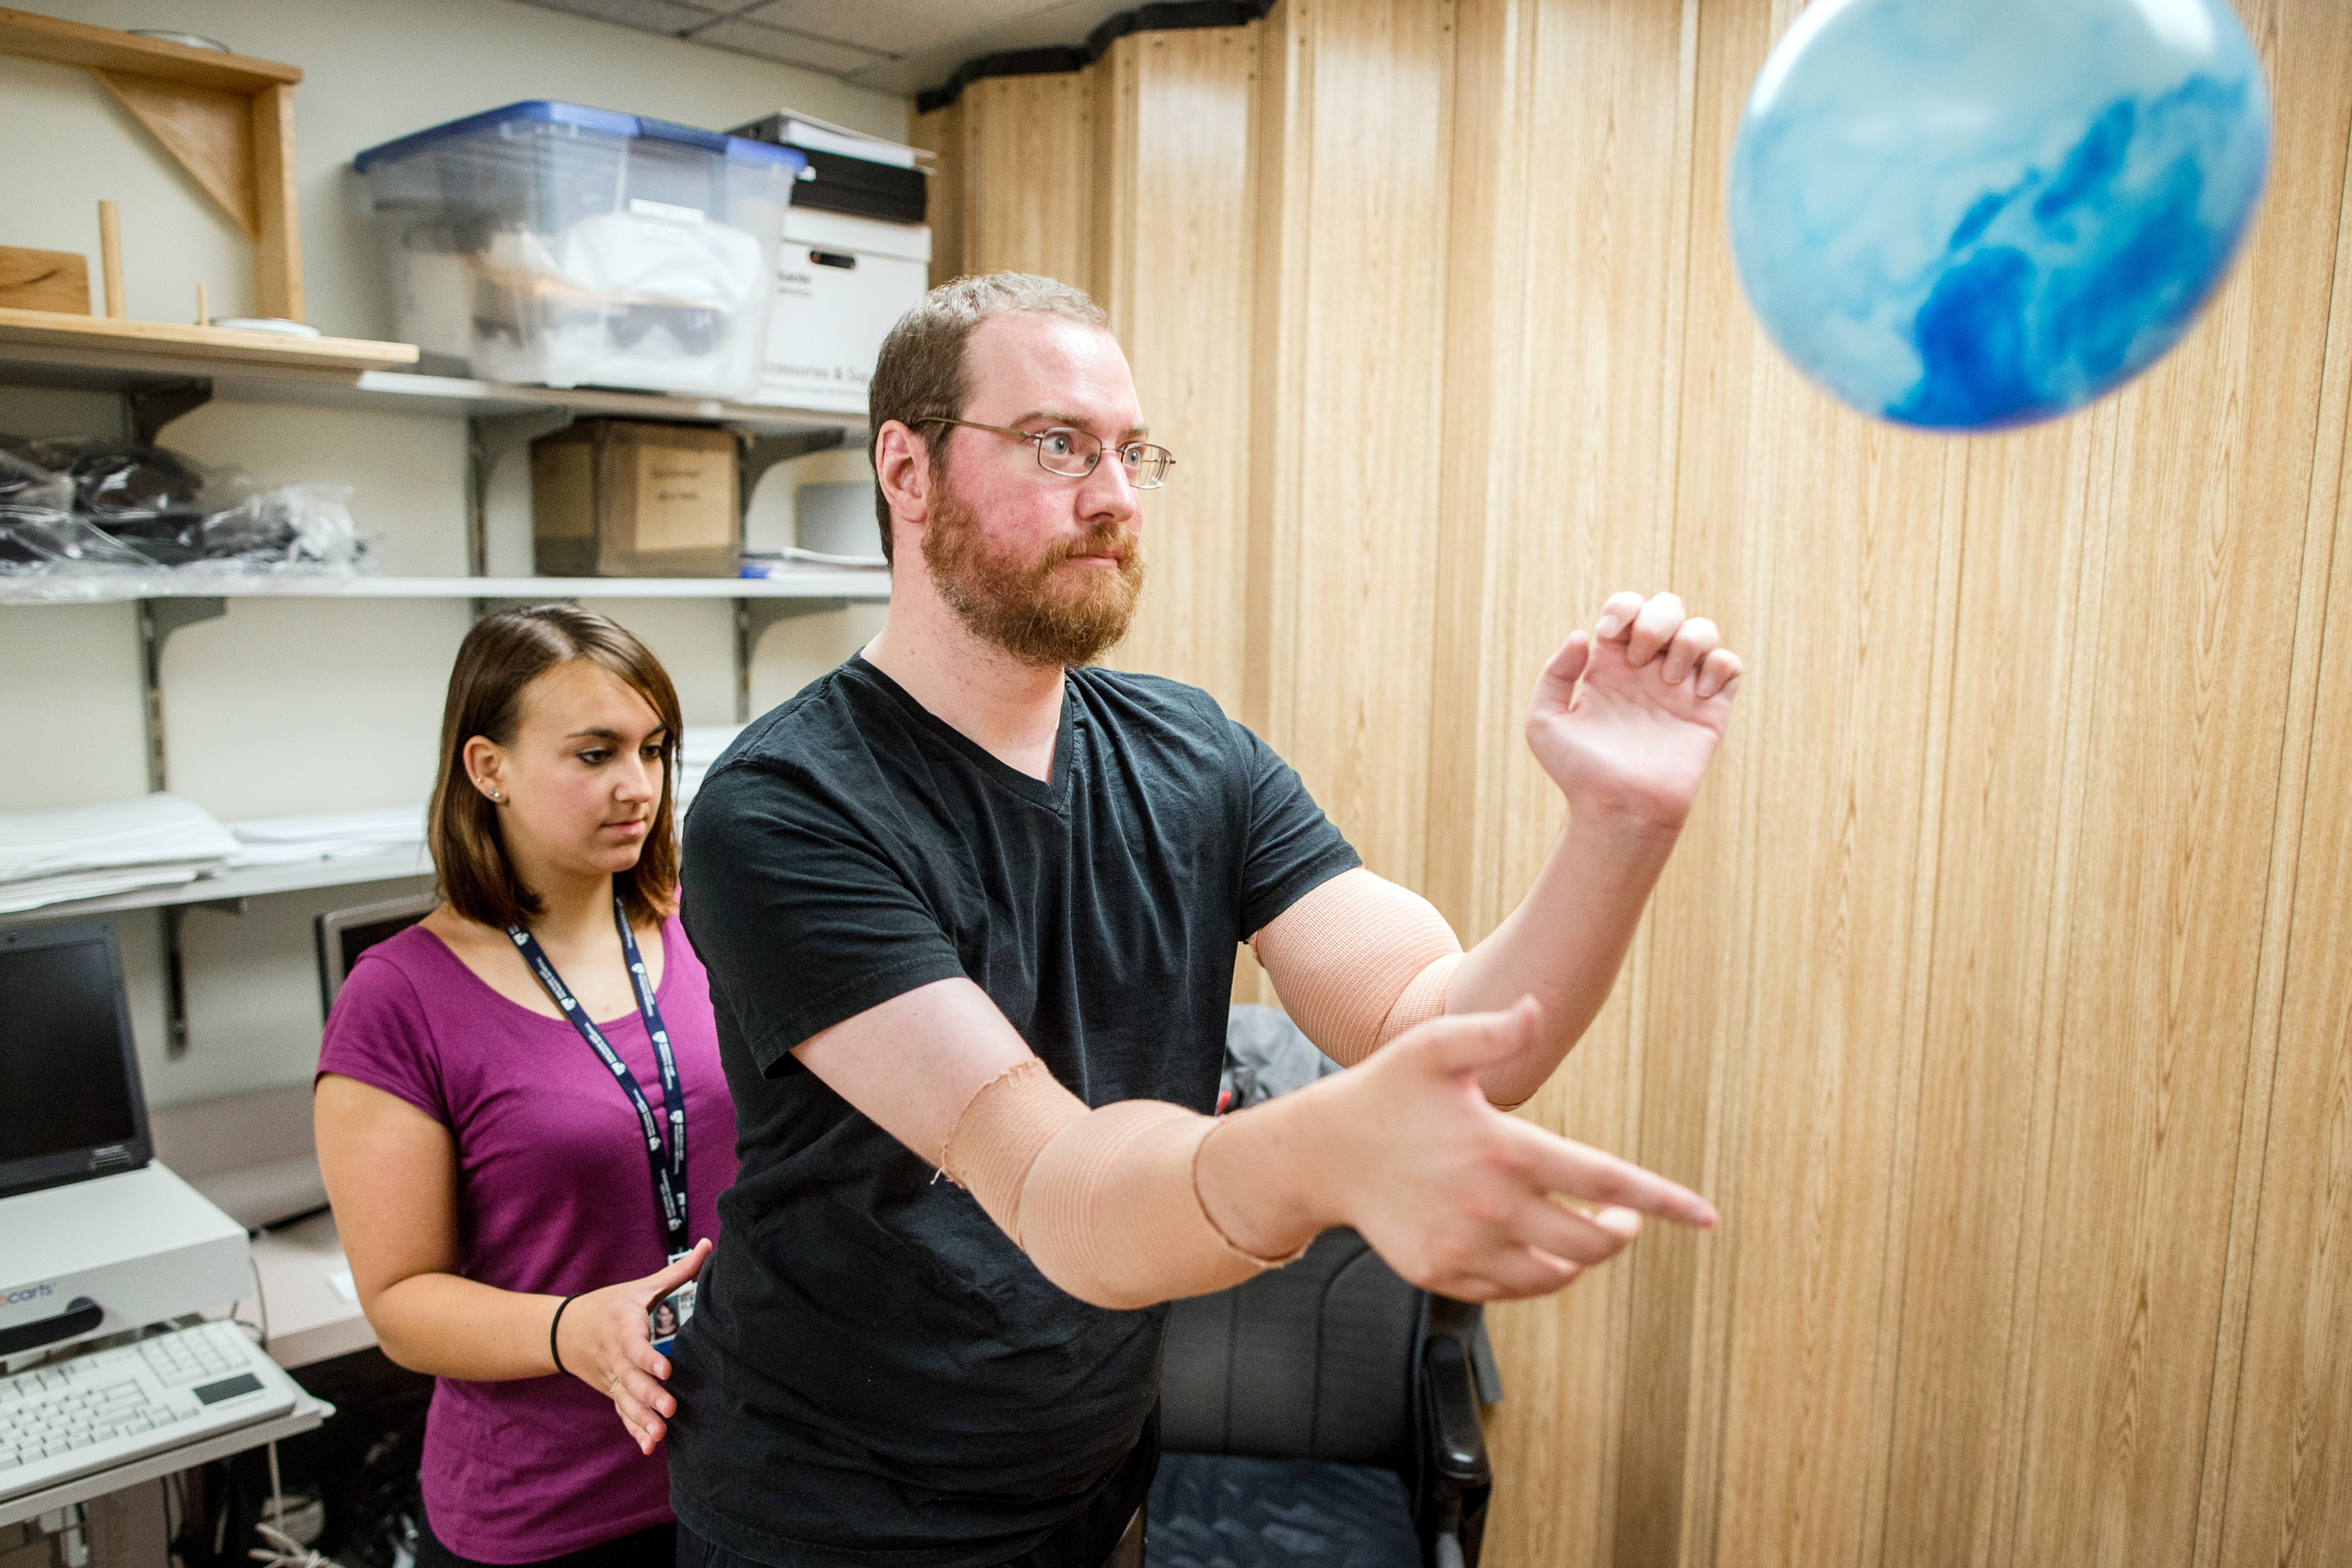 Grueling work required to make arm transplants succeed